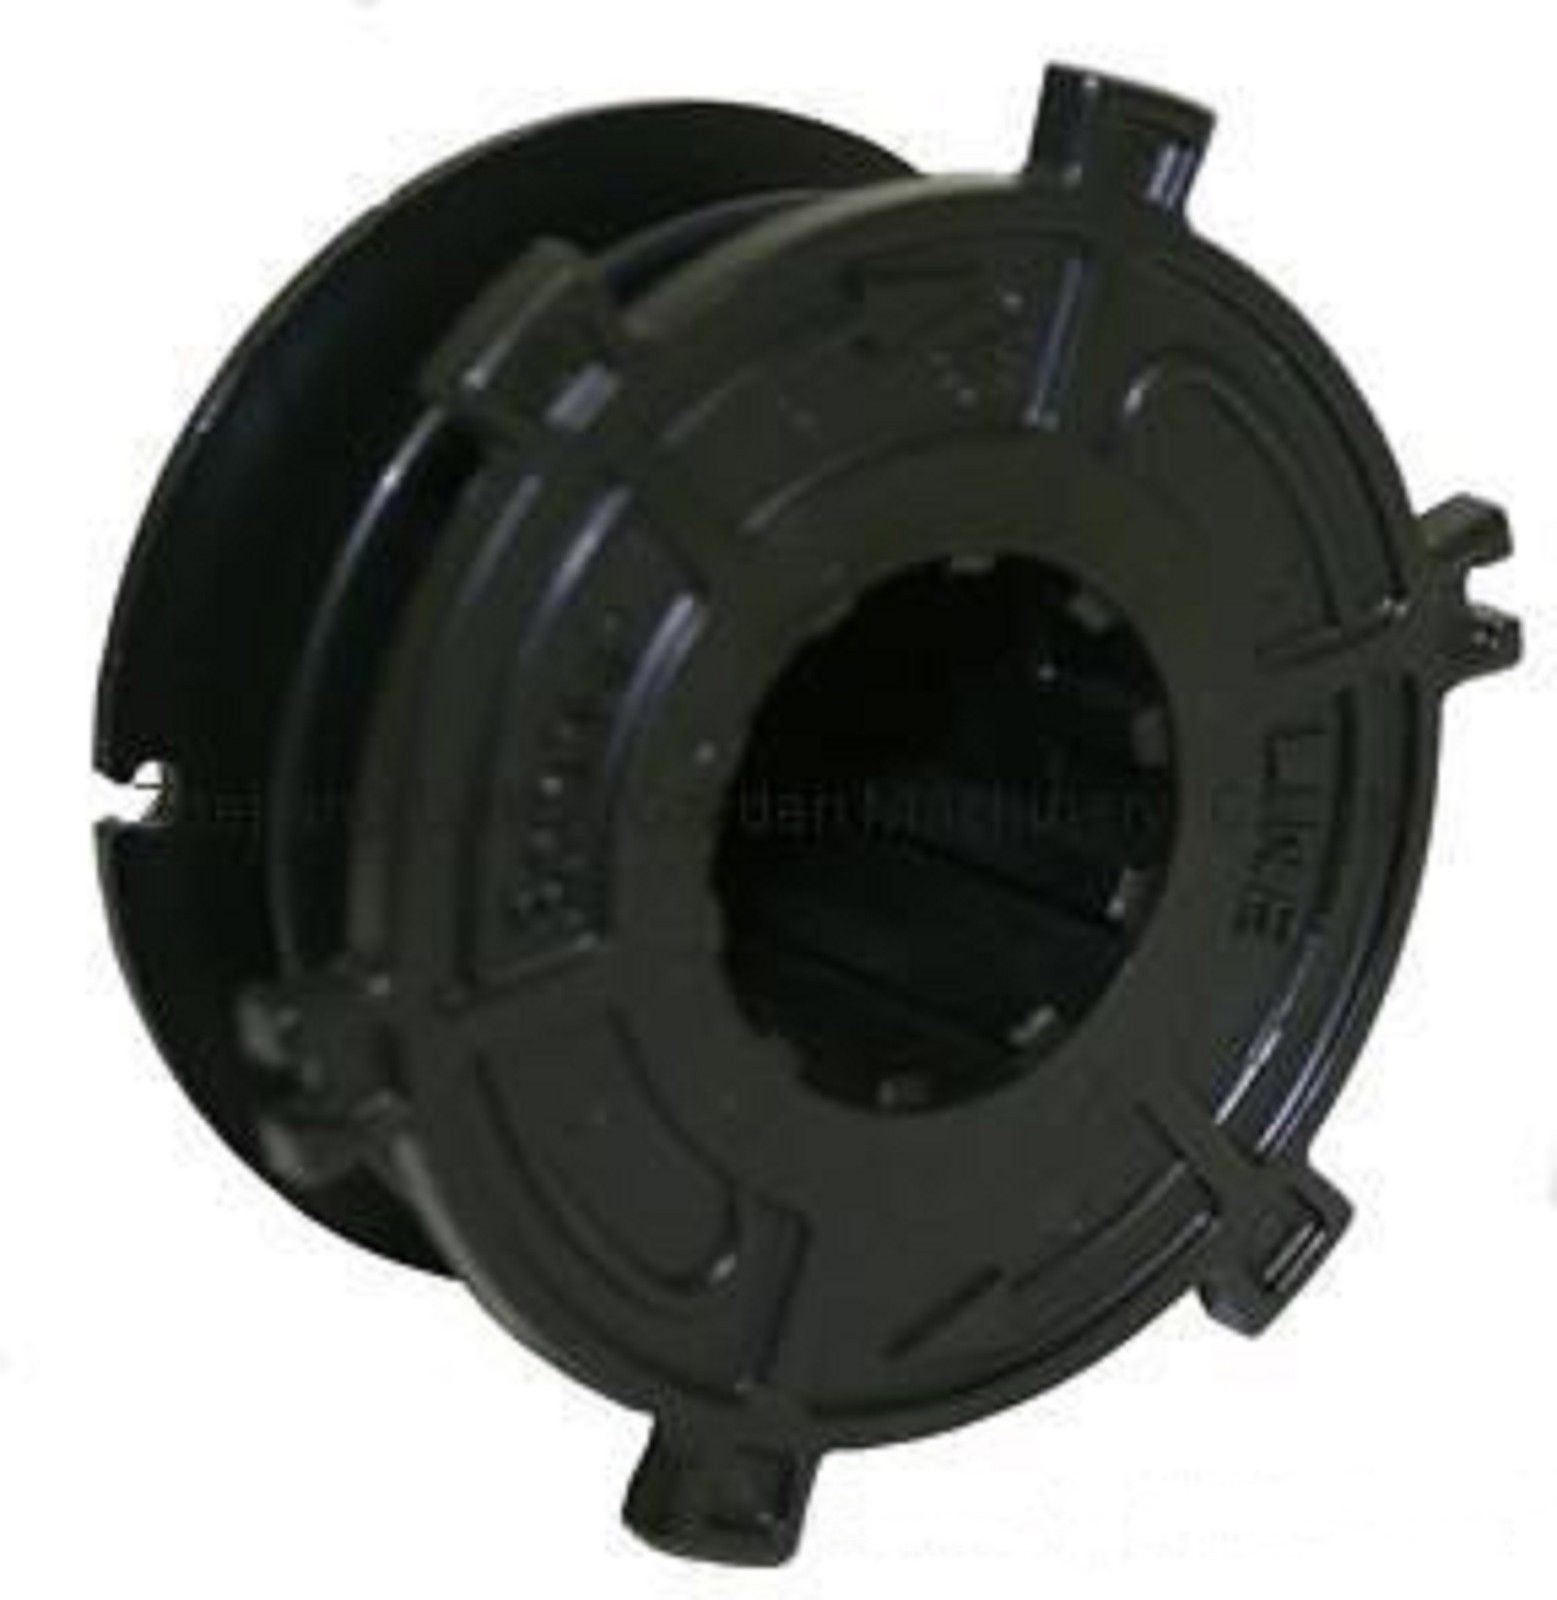 Proven Part REPLACEMENT SPOOL FOR AUTOCUT 25-2